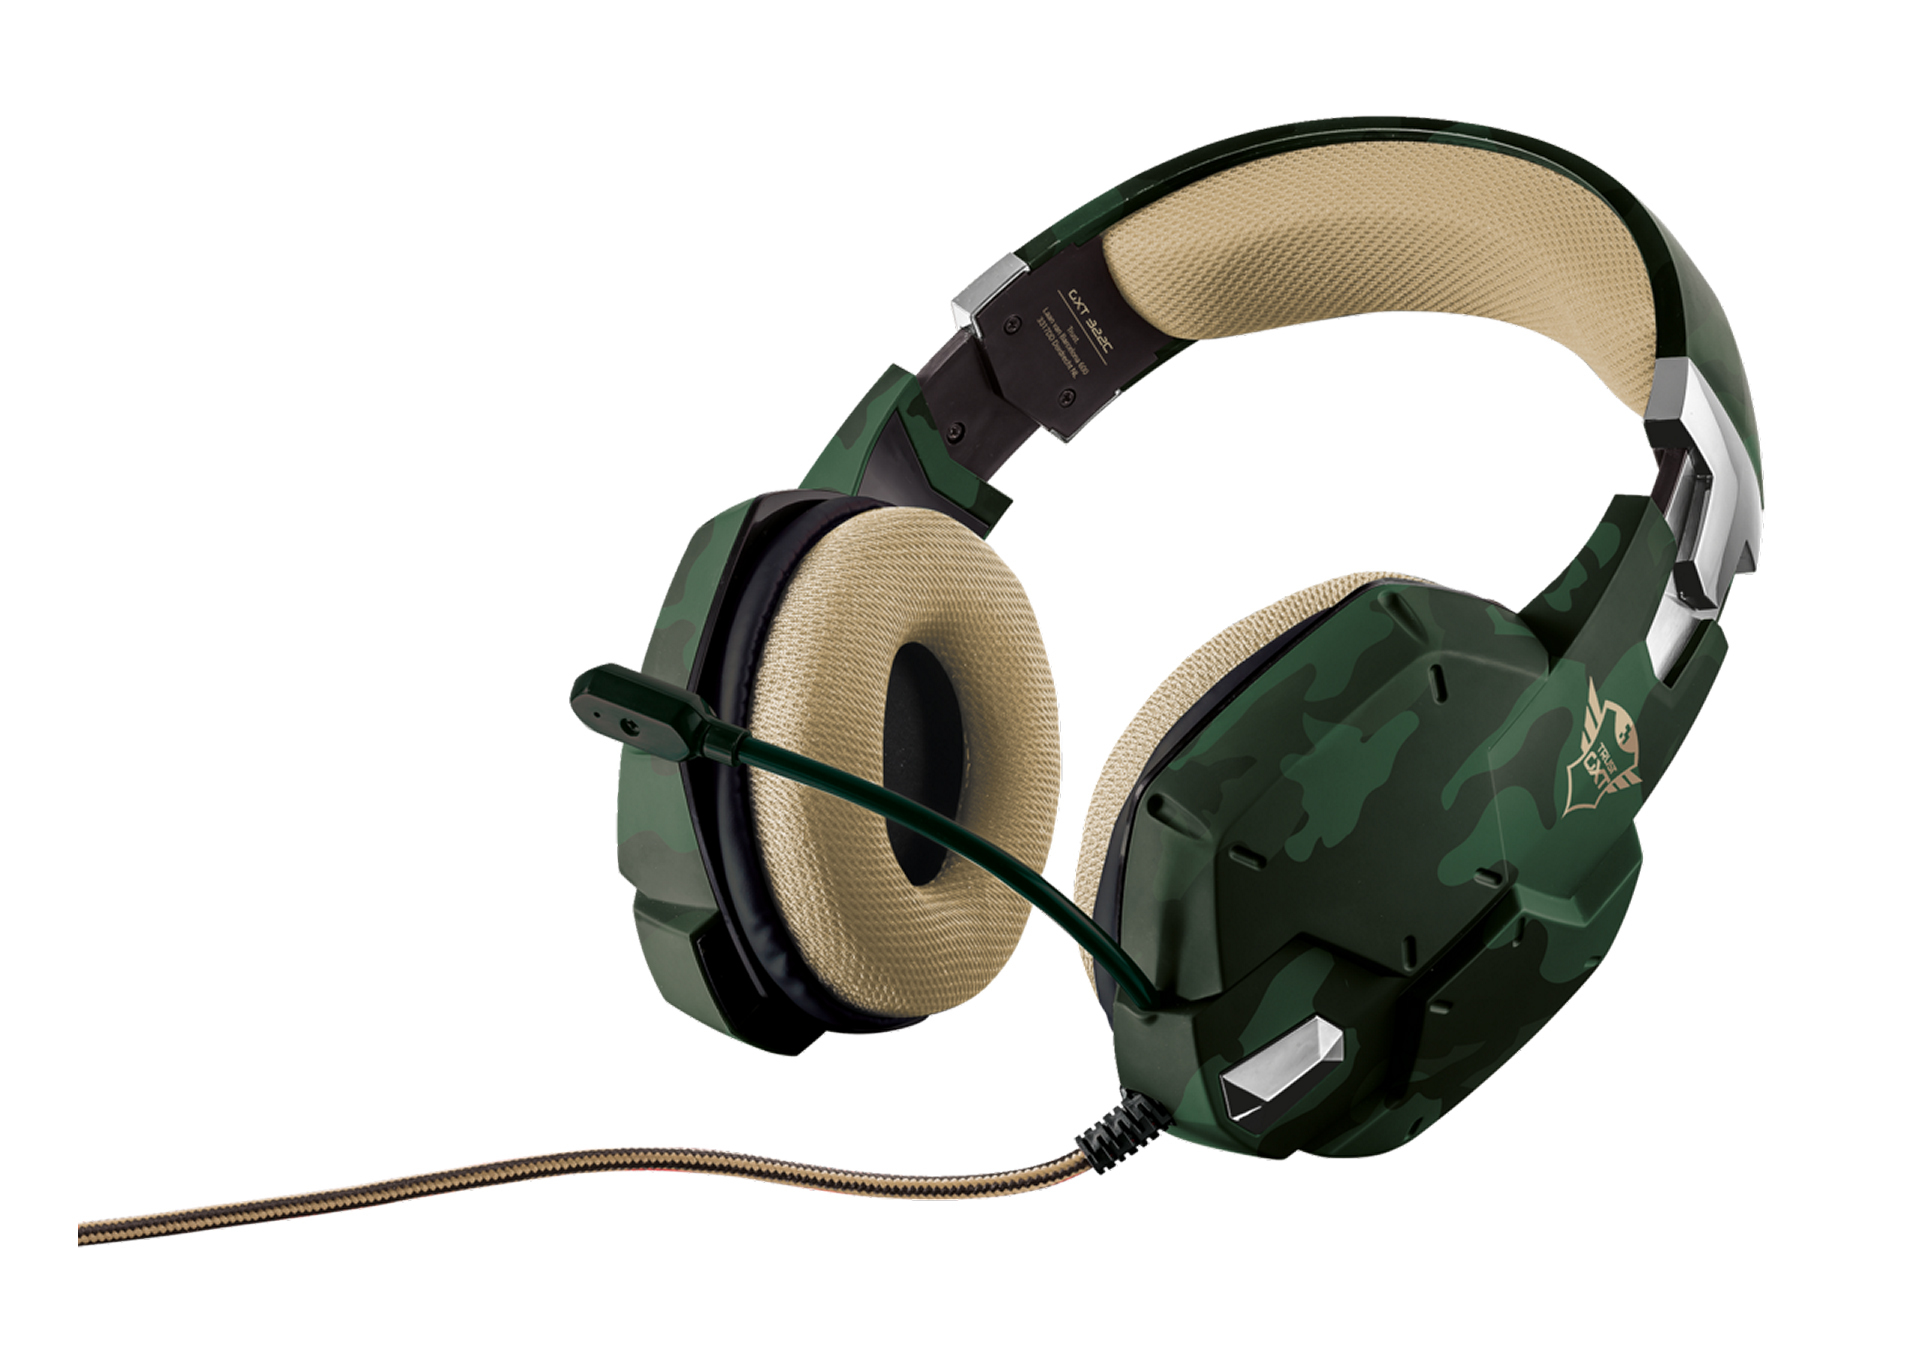 20865 Trust GXT 322C Binaural Head-band Green headset - Ent01